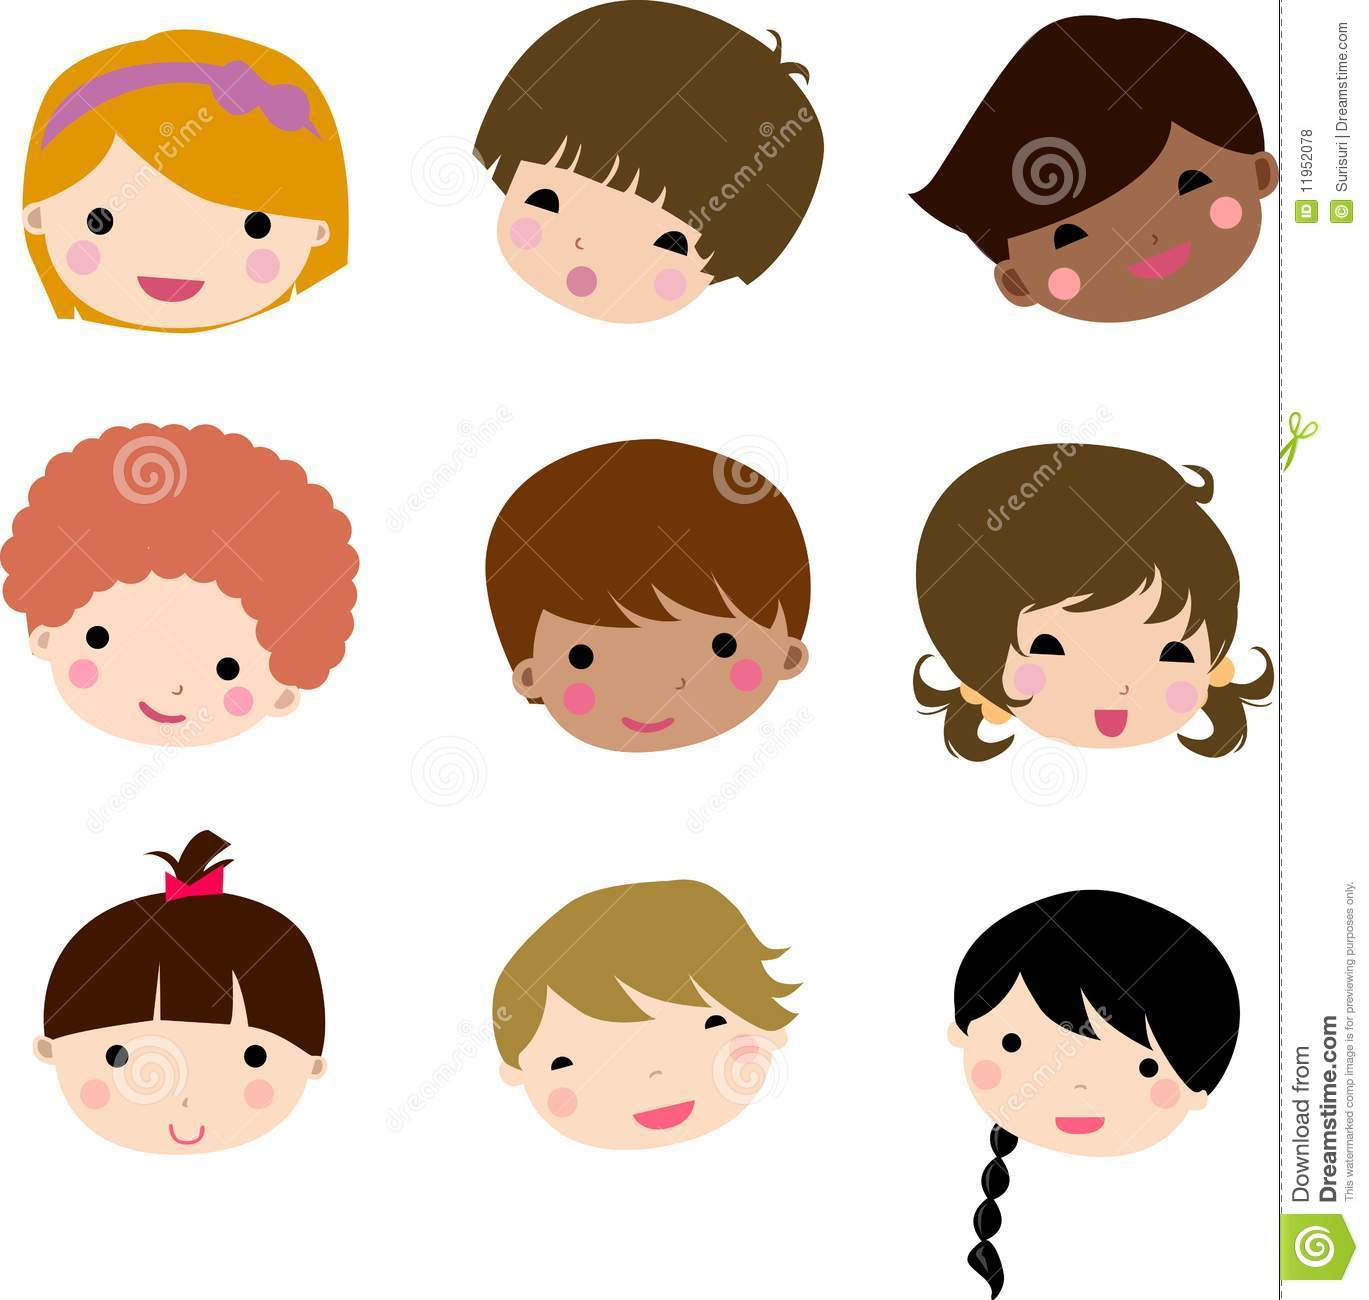 Cartoon Children Face Royalty Free Stock Image - Image: 18488656